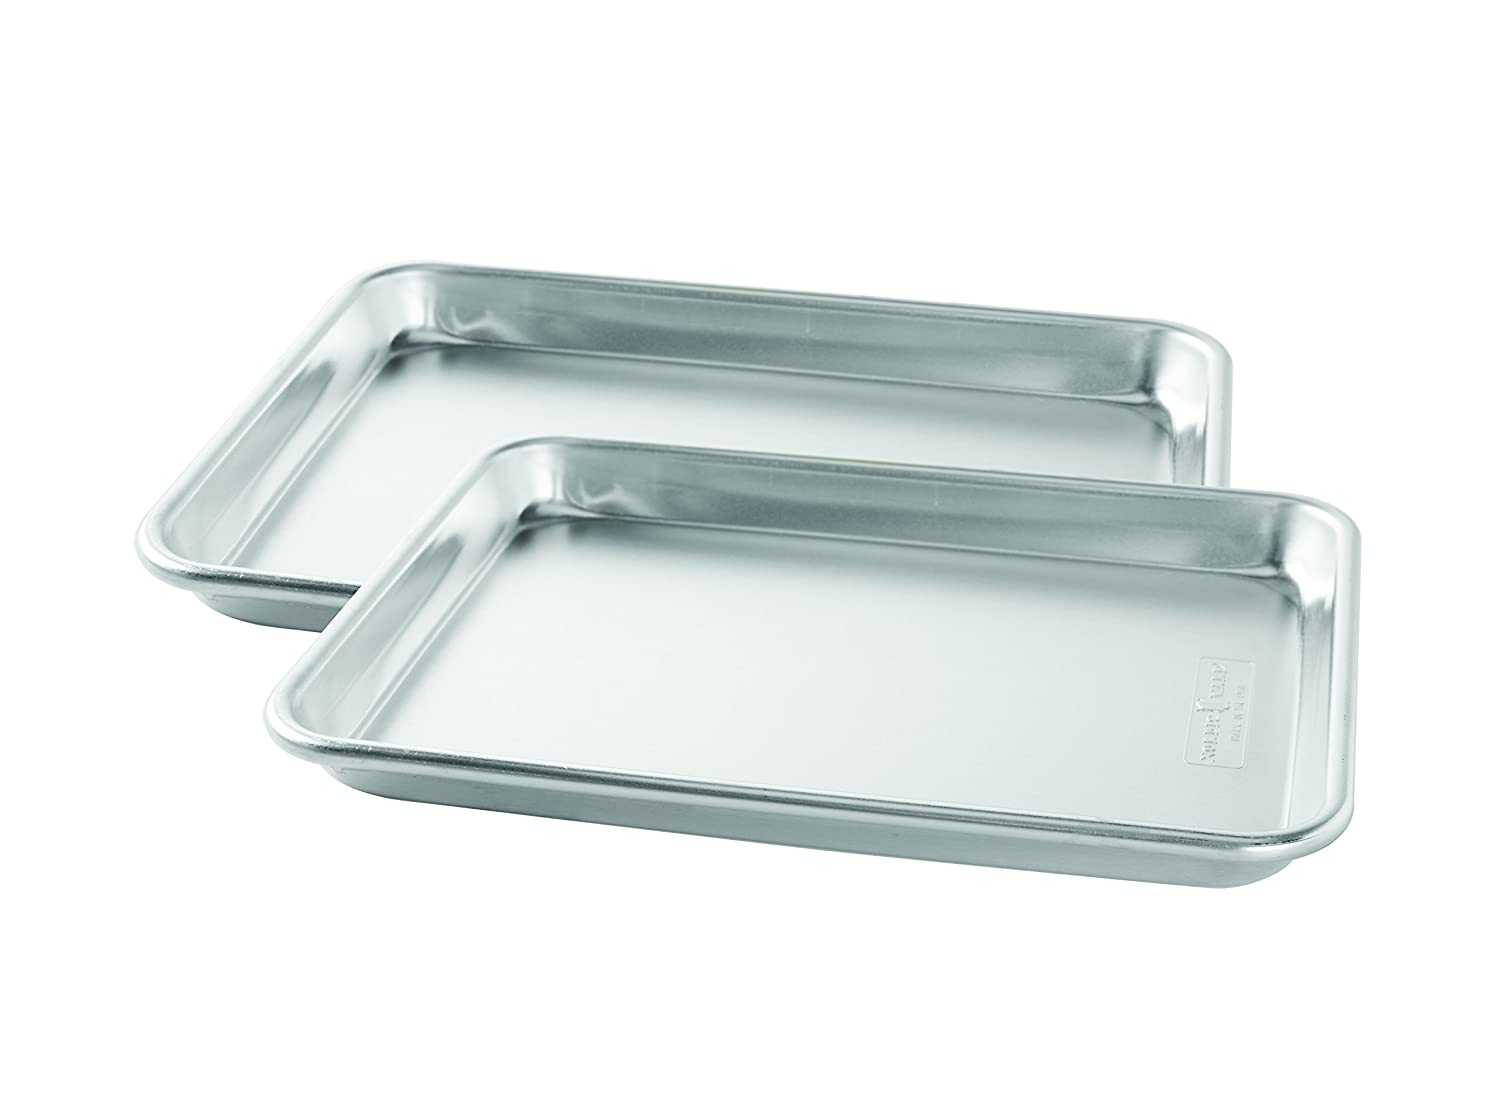 Nordic Ware Natural Aluminum Commercial Baker's Quarter Sheet, 2-Pack